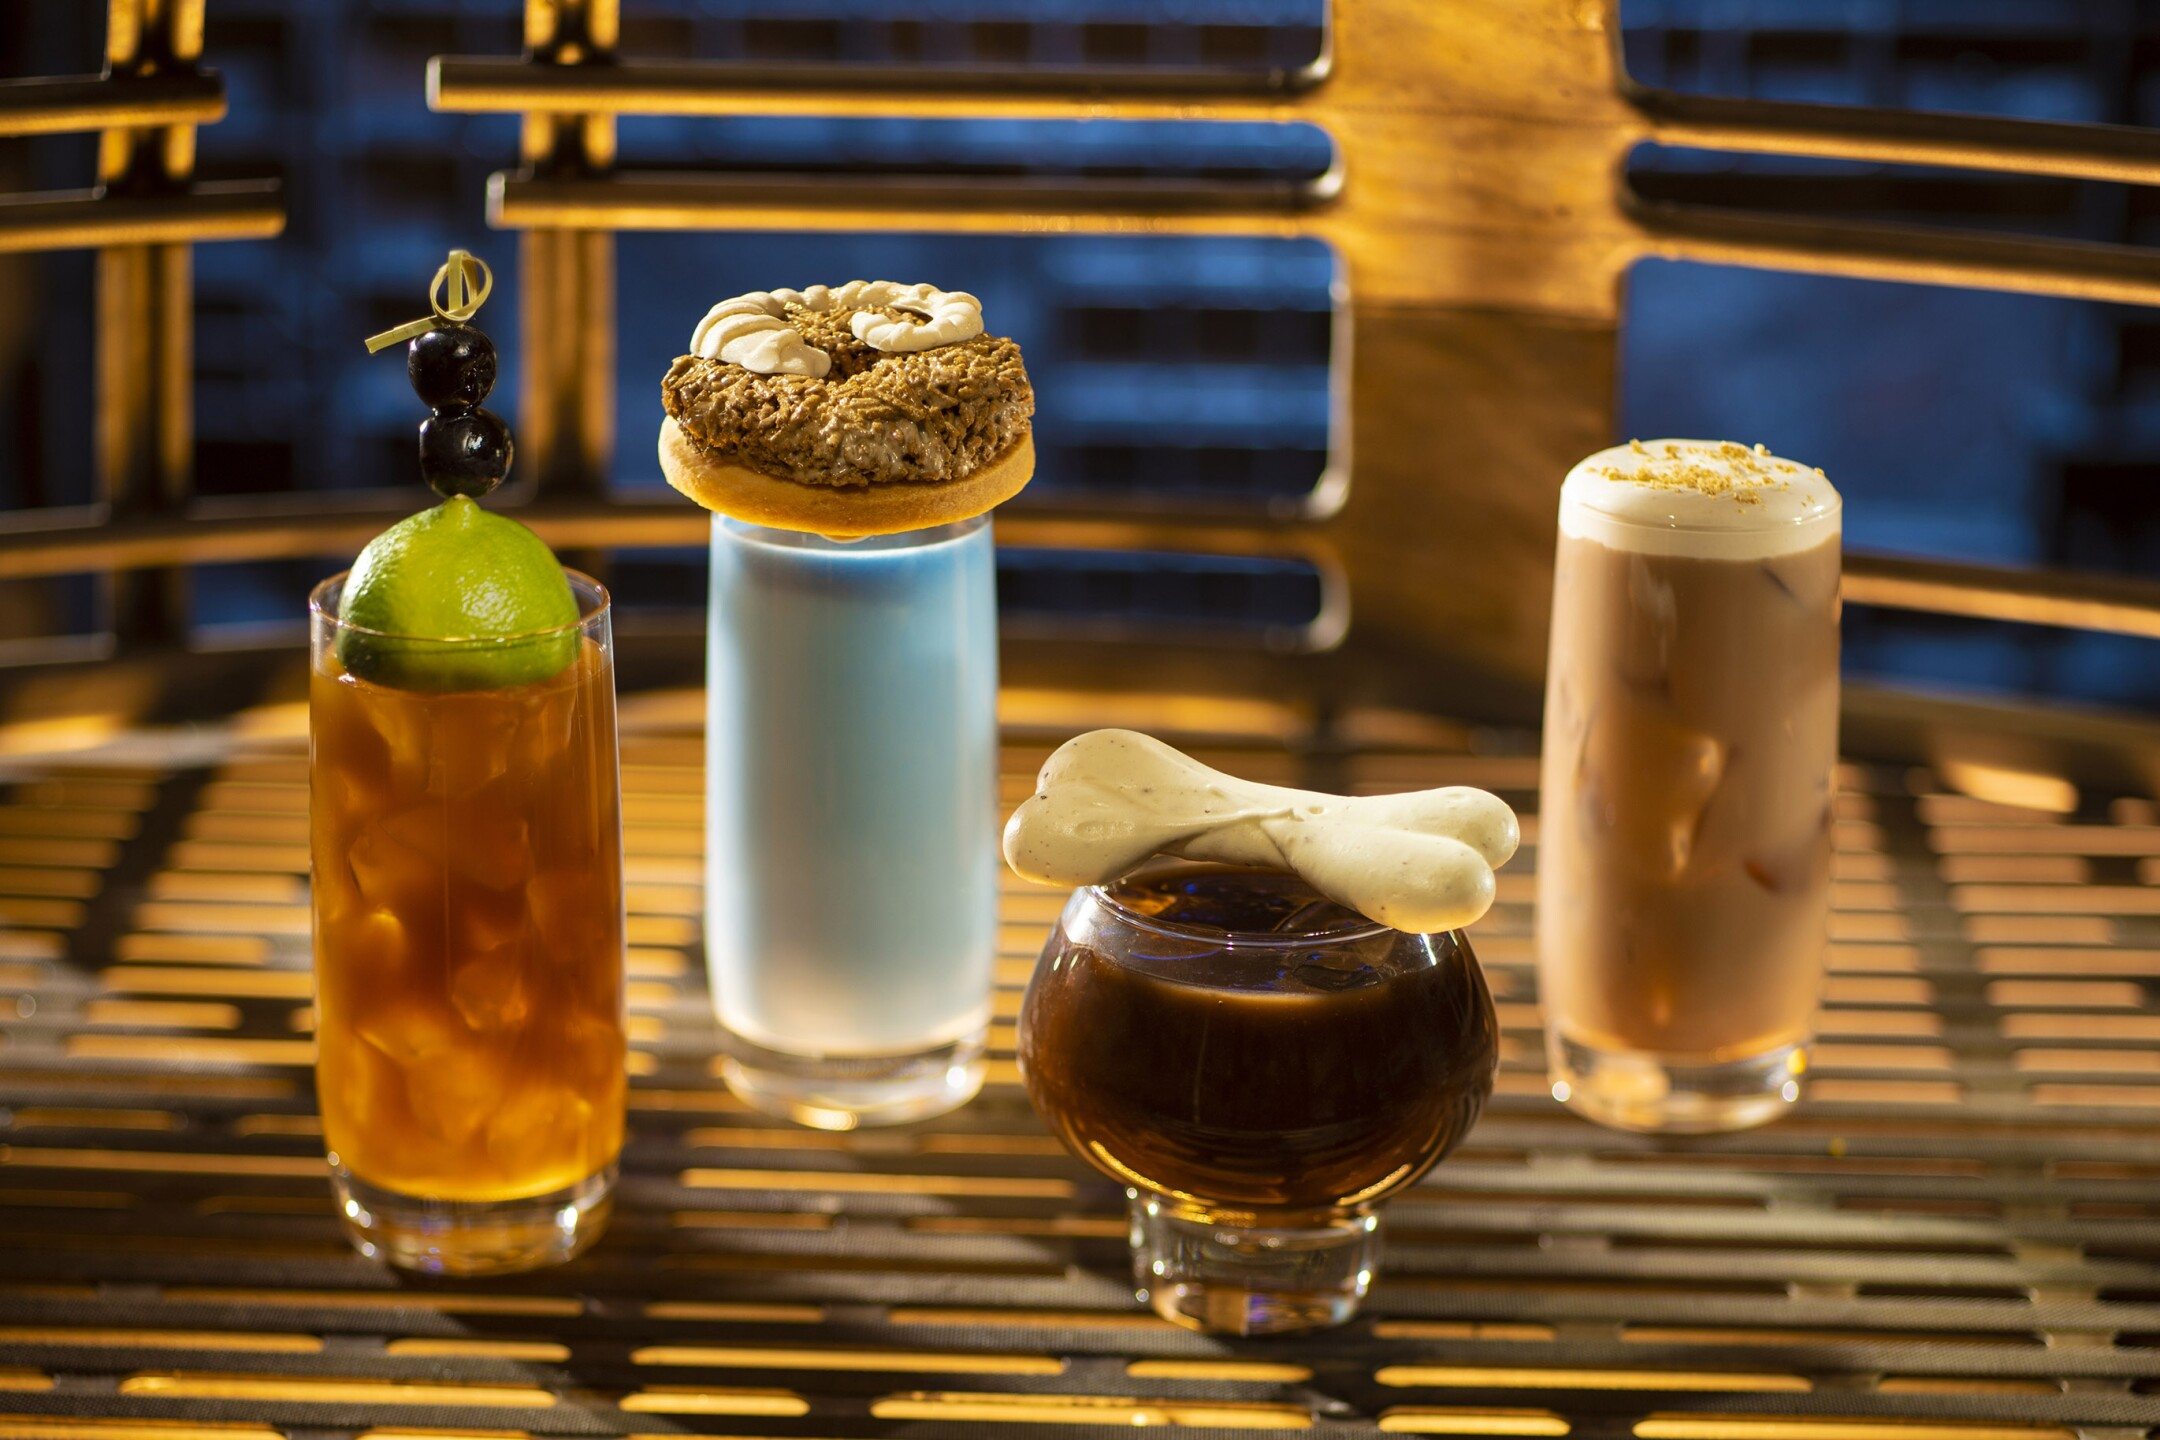 Star Wars: Galaxy's Edge - Oga's Cantina Breakfast Beverages